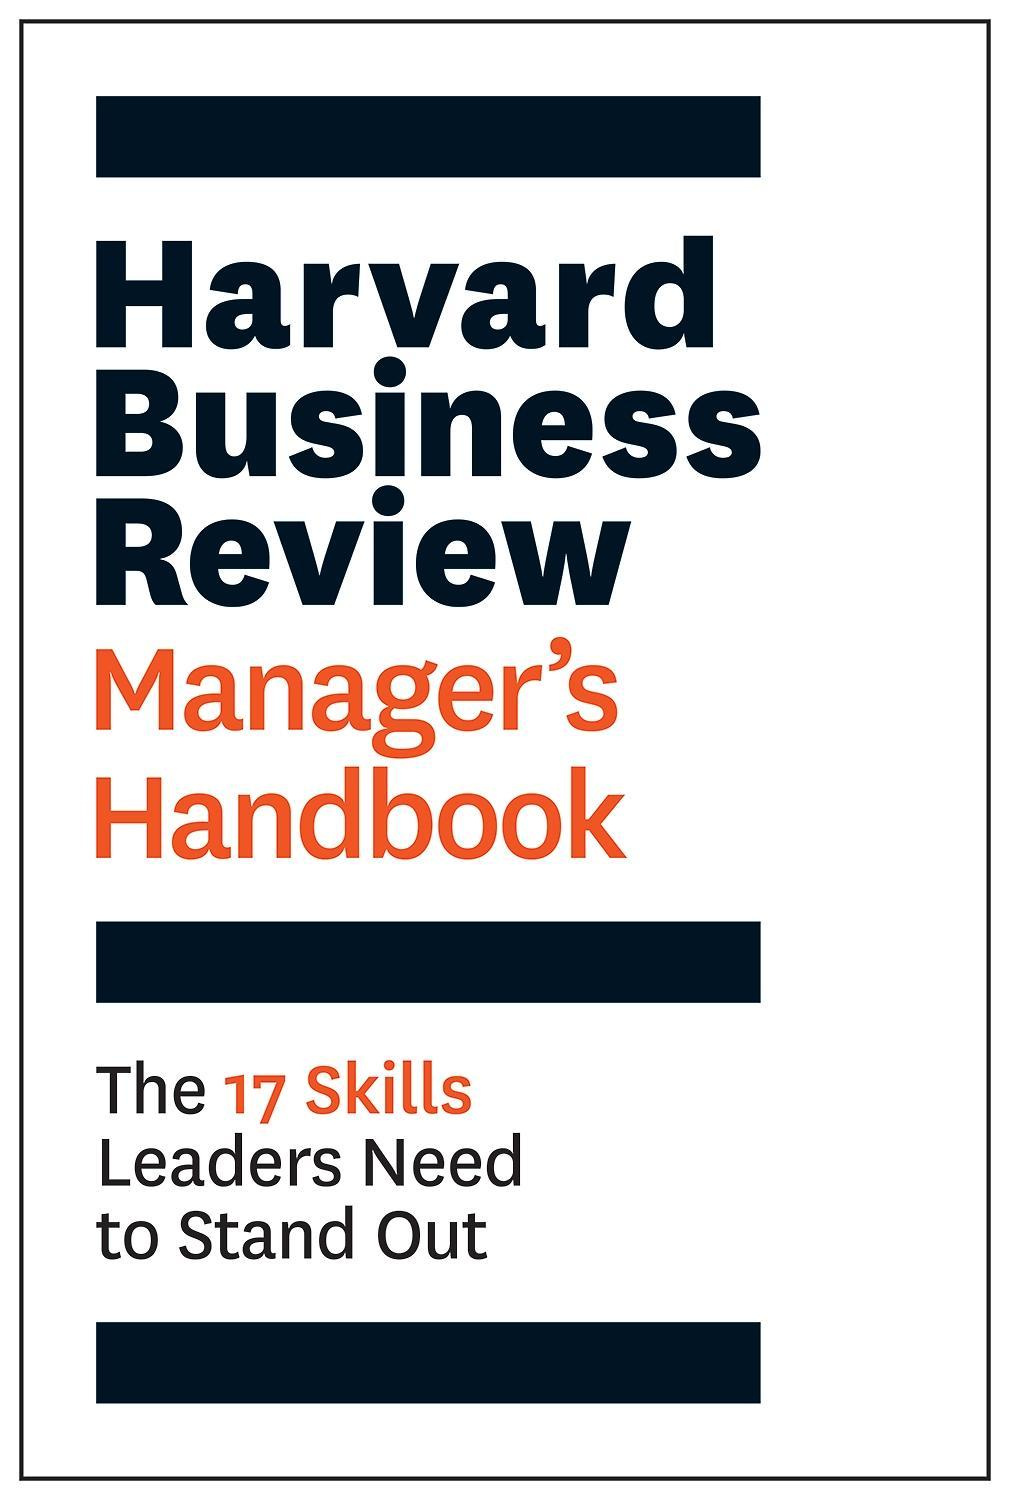 The Harvard Business Review Manager's HandbookThe 17 Skills Leaders Need to Stand Out